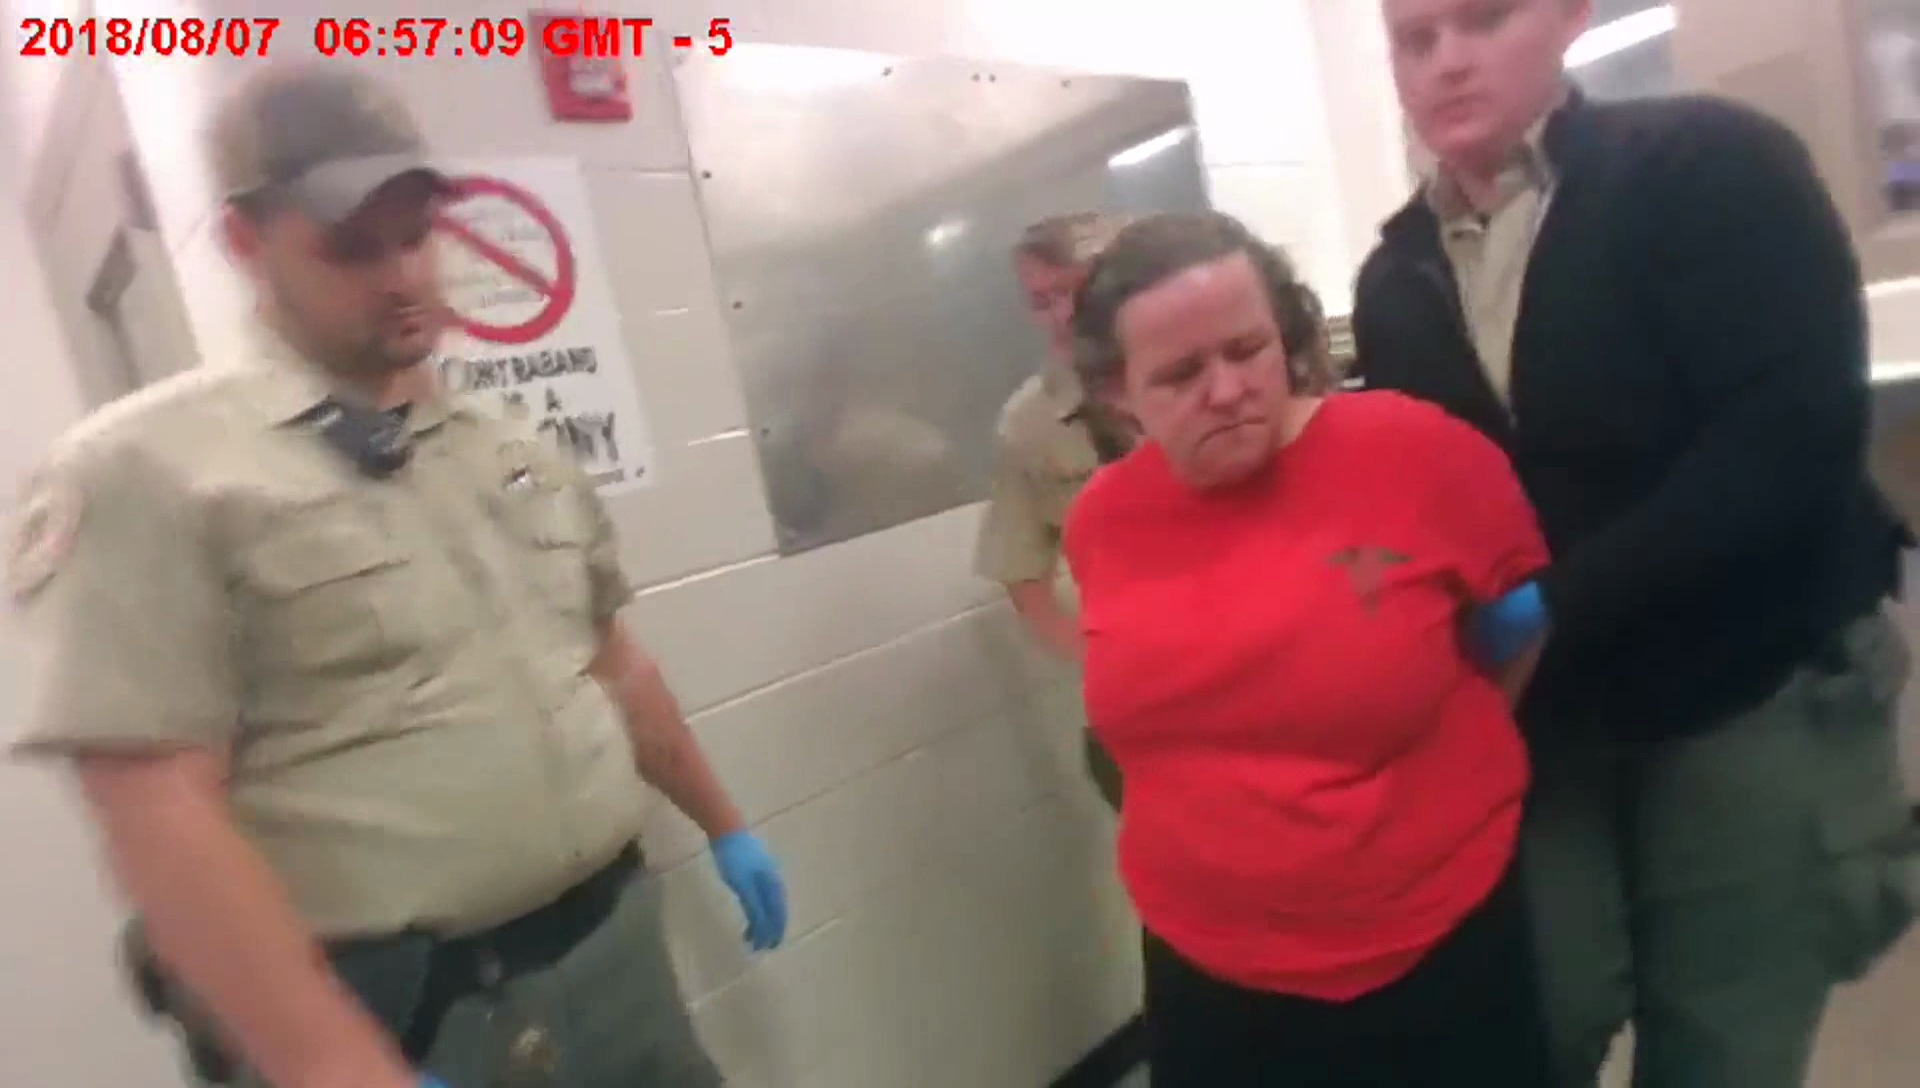 Body Cam Video Arrest_1534540443042.jpg.jpg